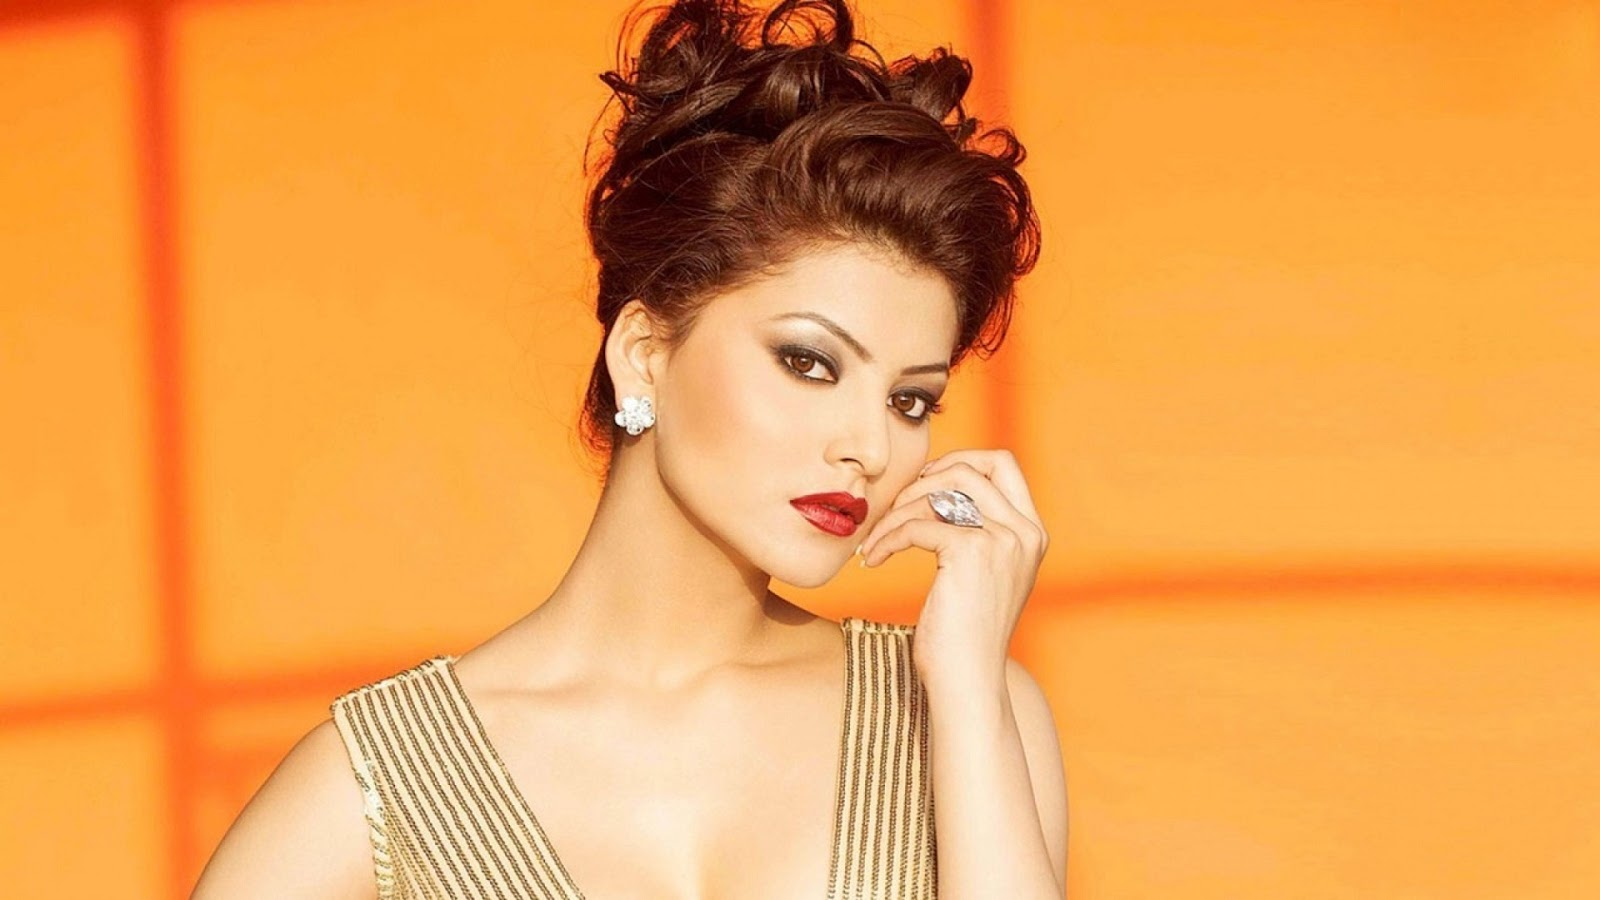 Urvashi Rautela Hd Wallpapers 1920X1080 - Hot Photoshoot -7106